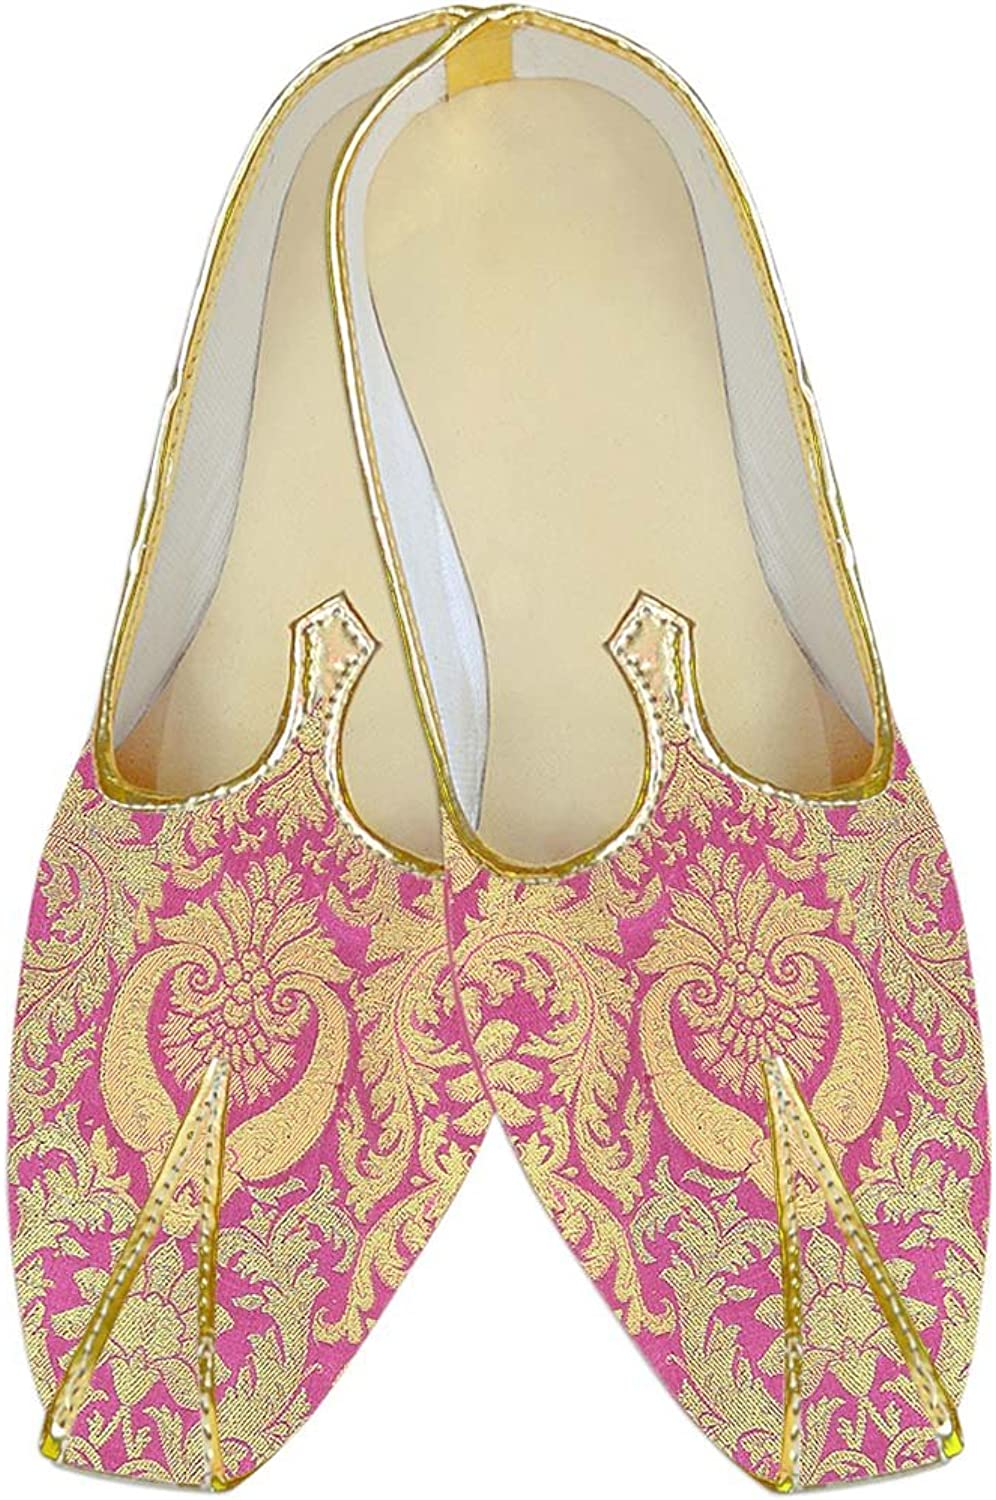 INMONARCH Mens Pink Kheenkhap Wedding shoes golden Floral MJ18413